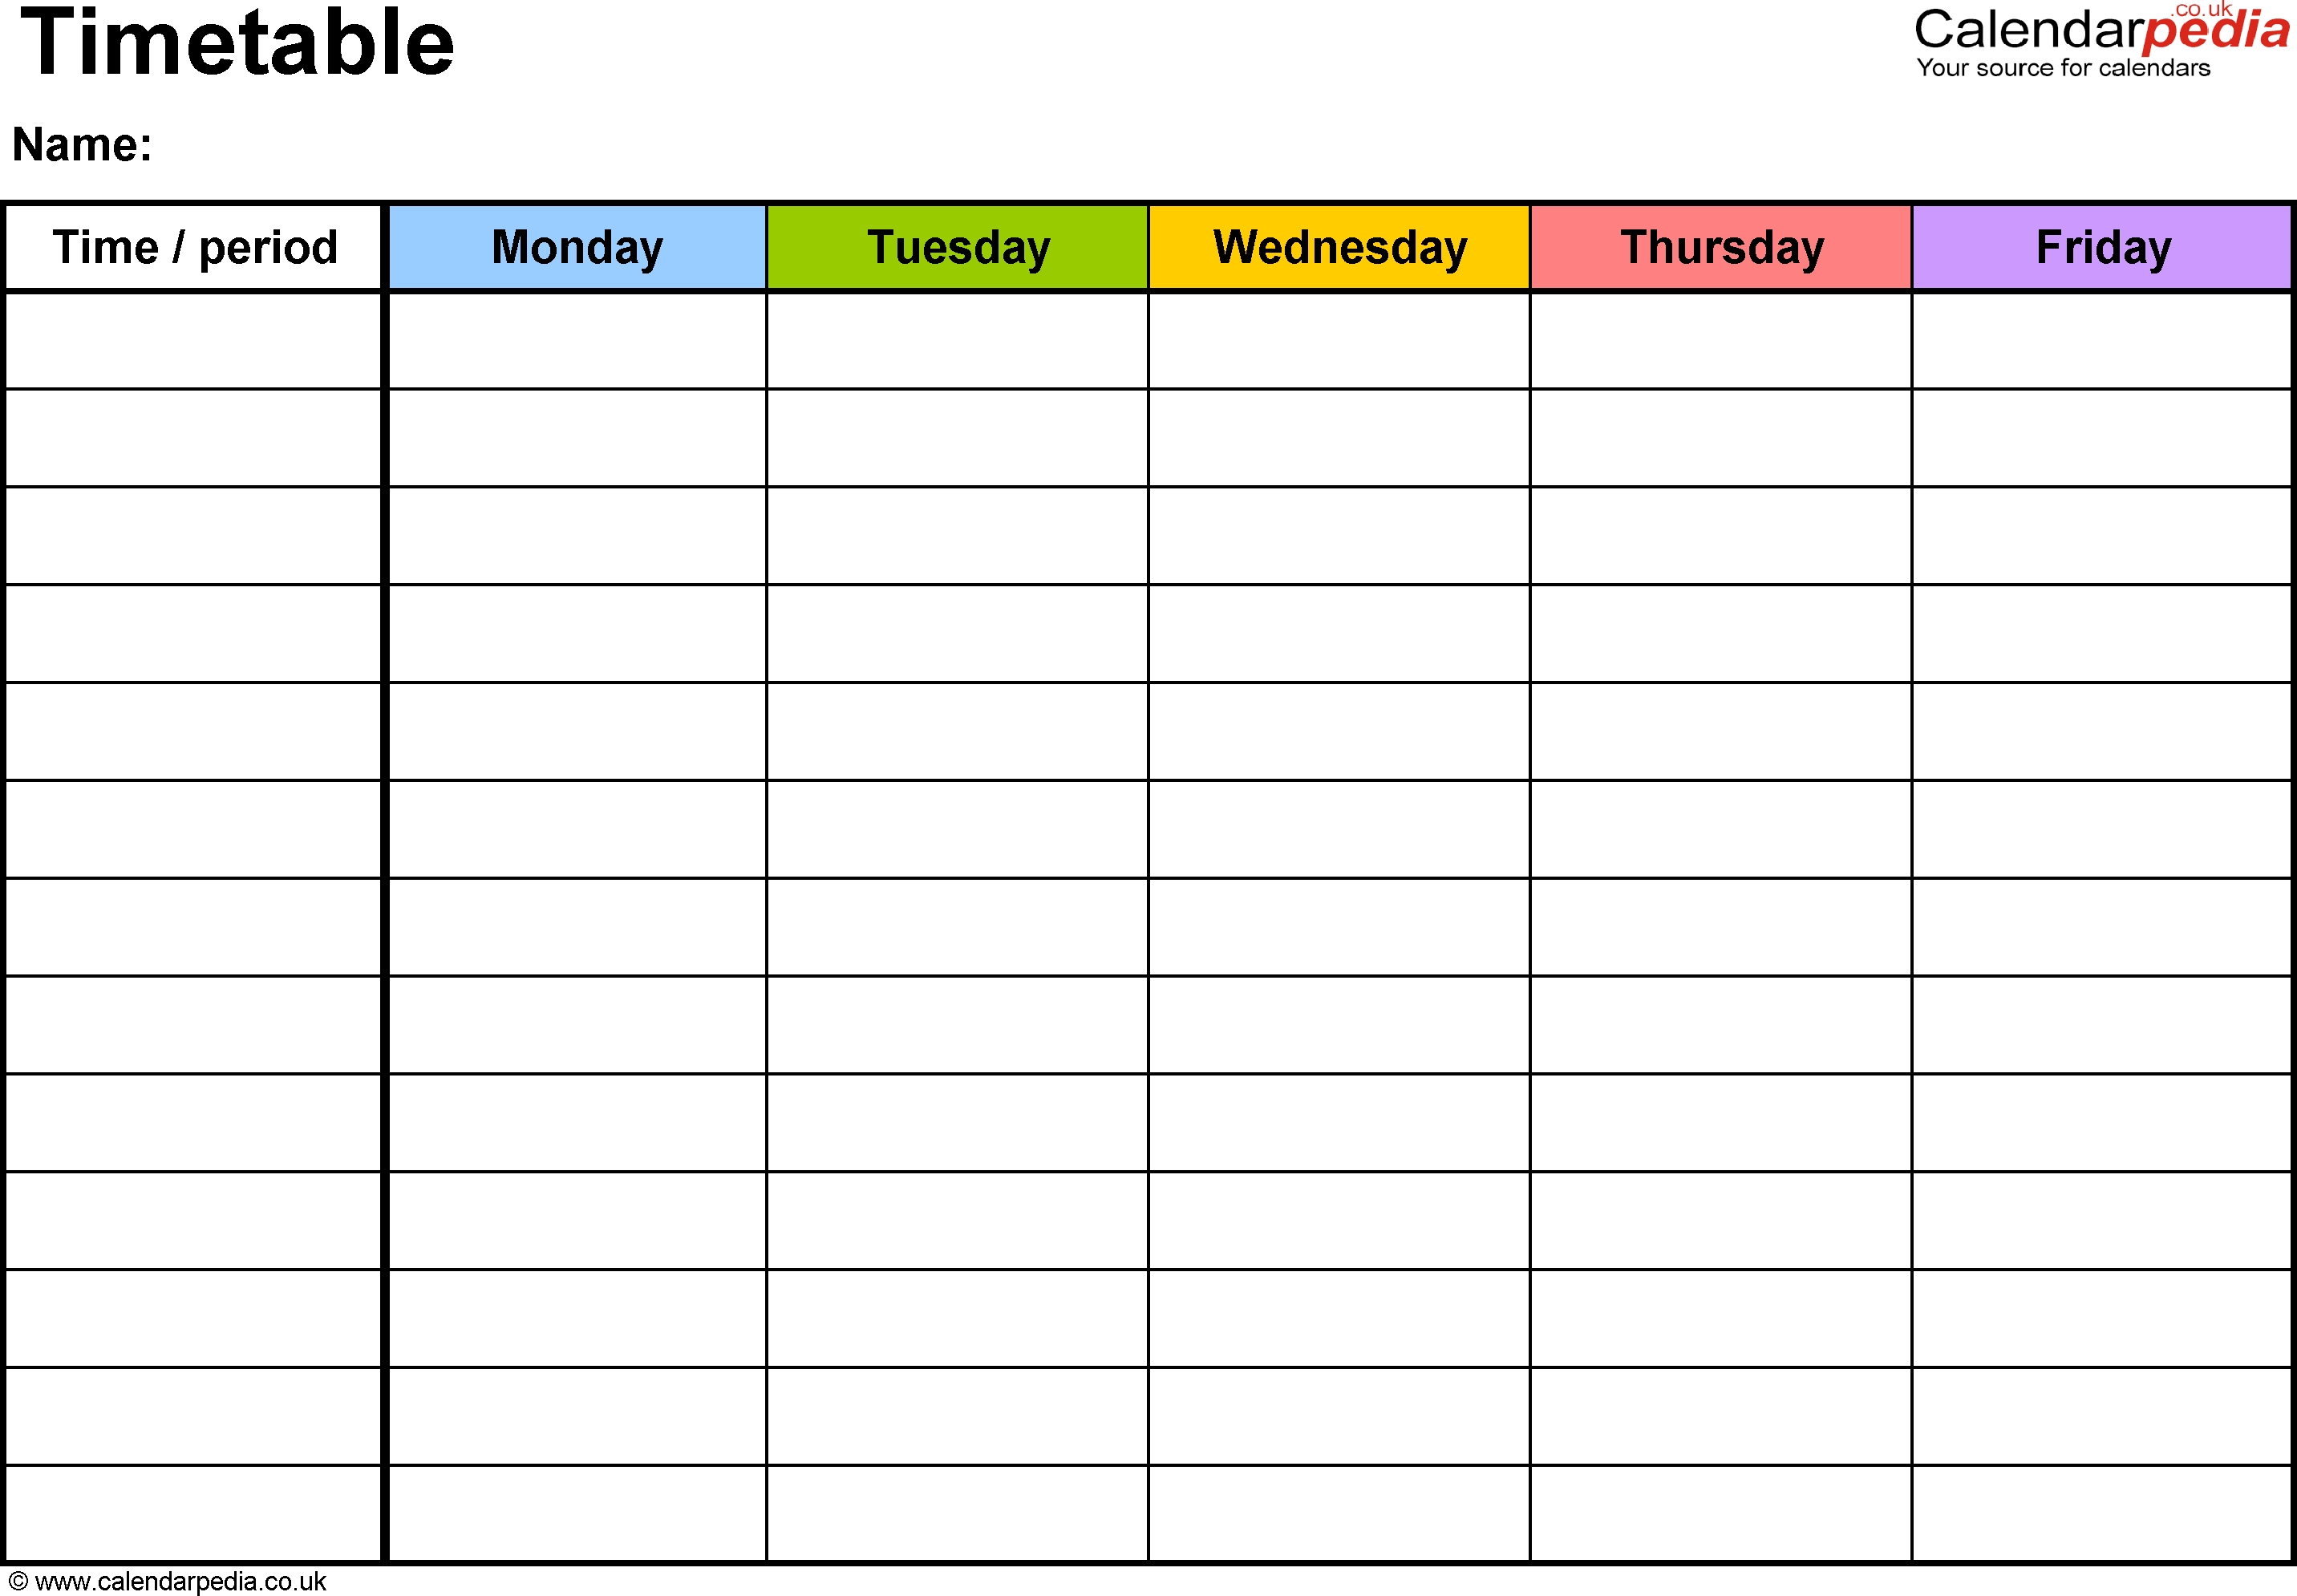 Pdf Timetable Template 2: Landscape Format, A4, 1 Page  7 Days Weekly Planner Word Template